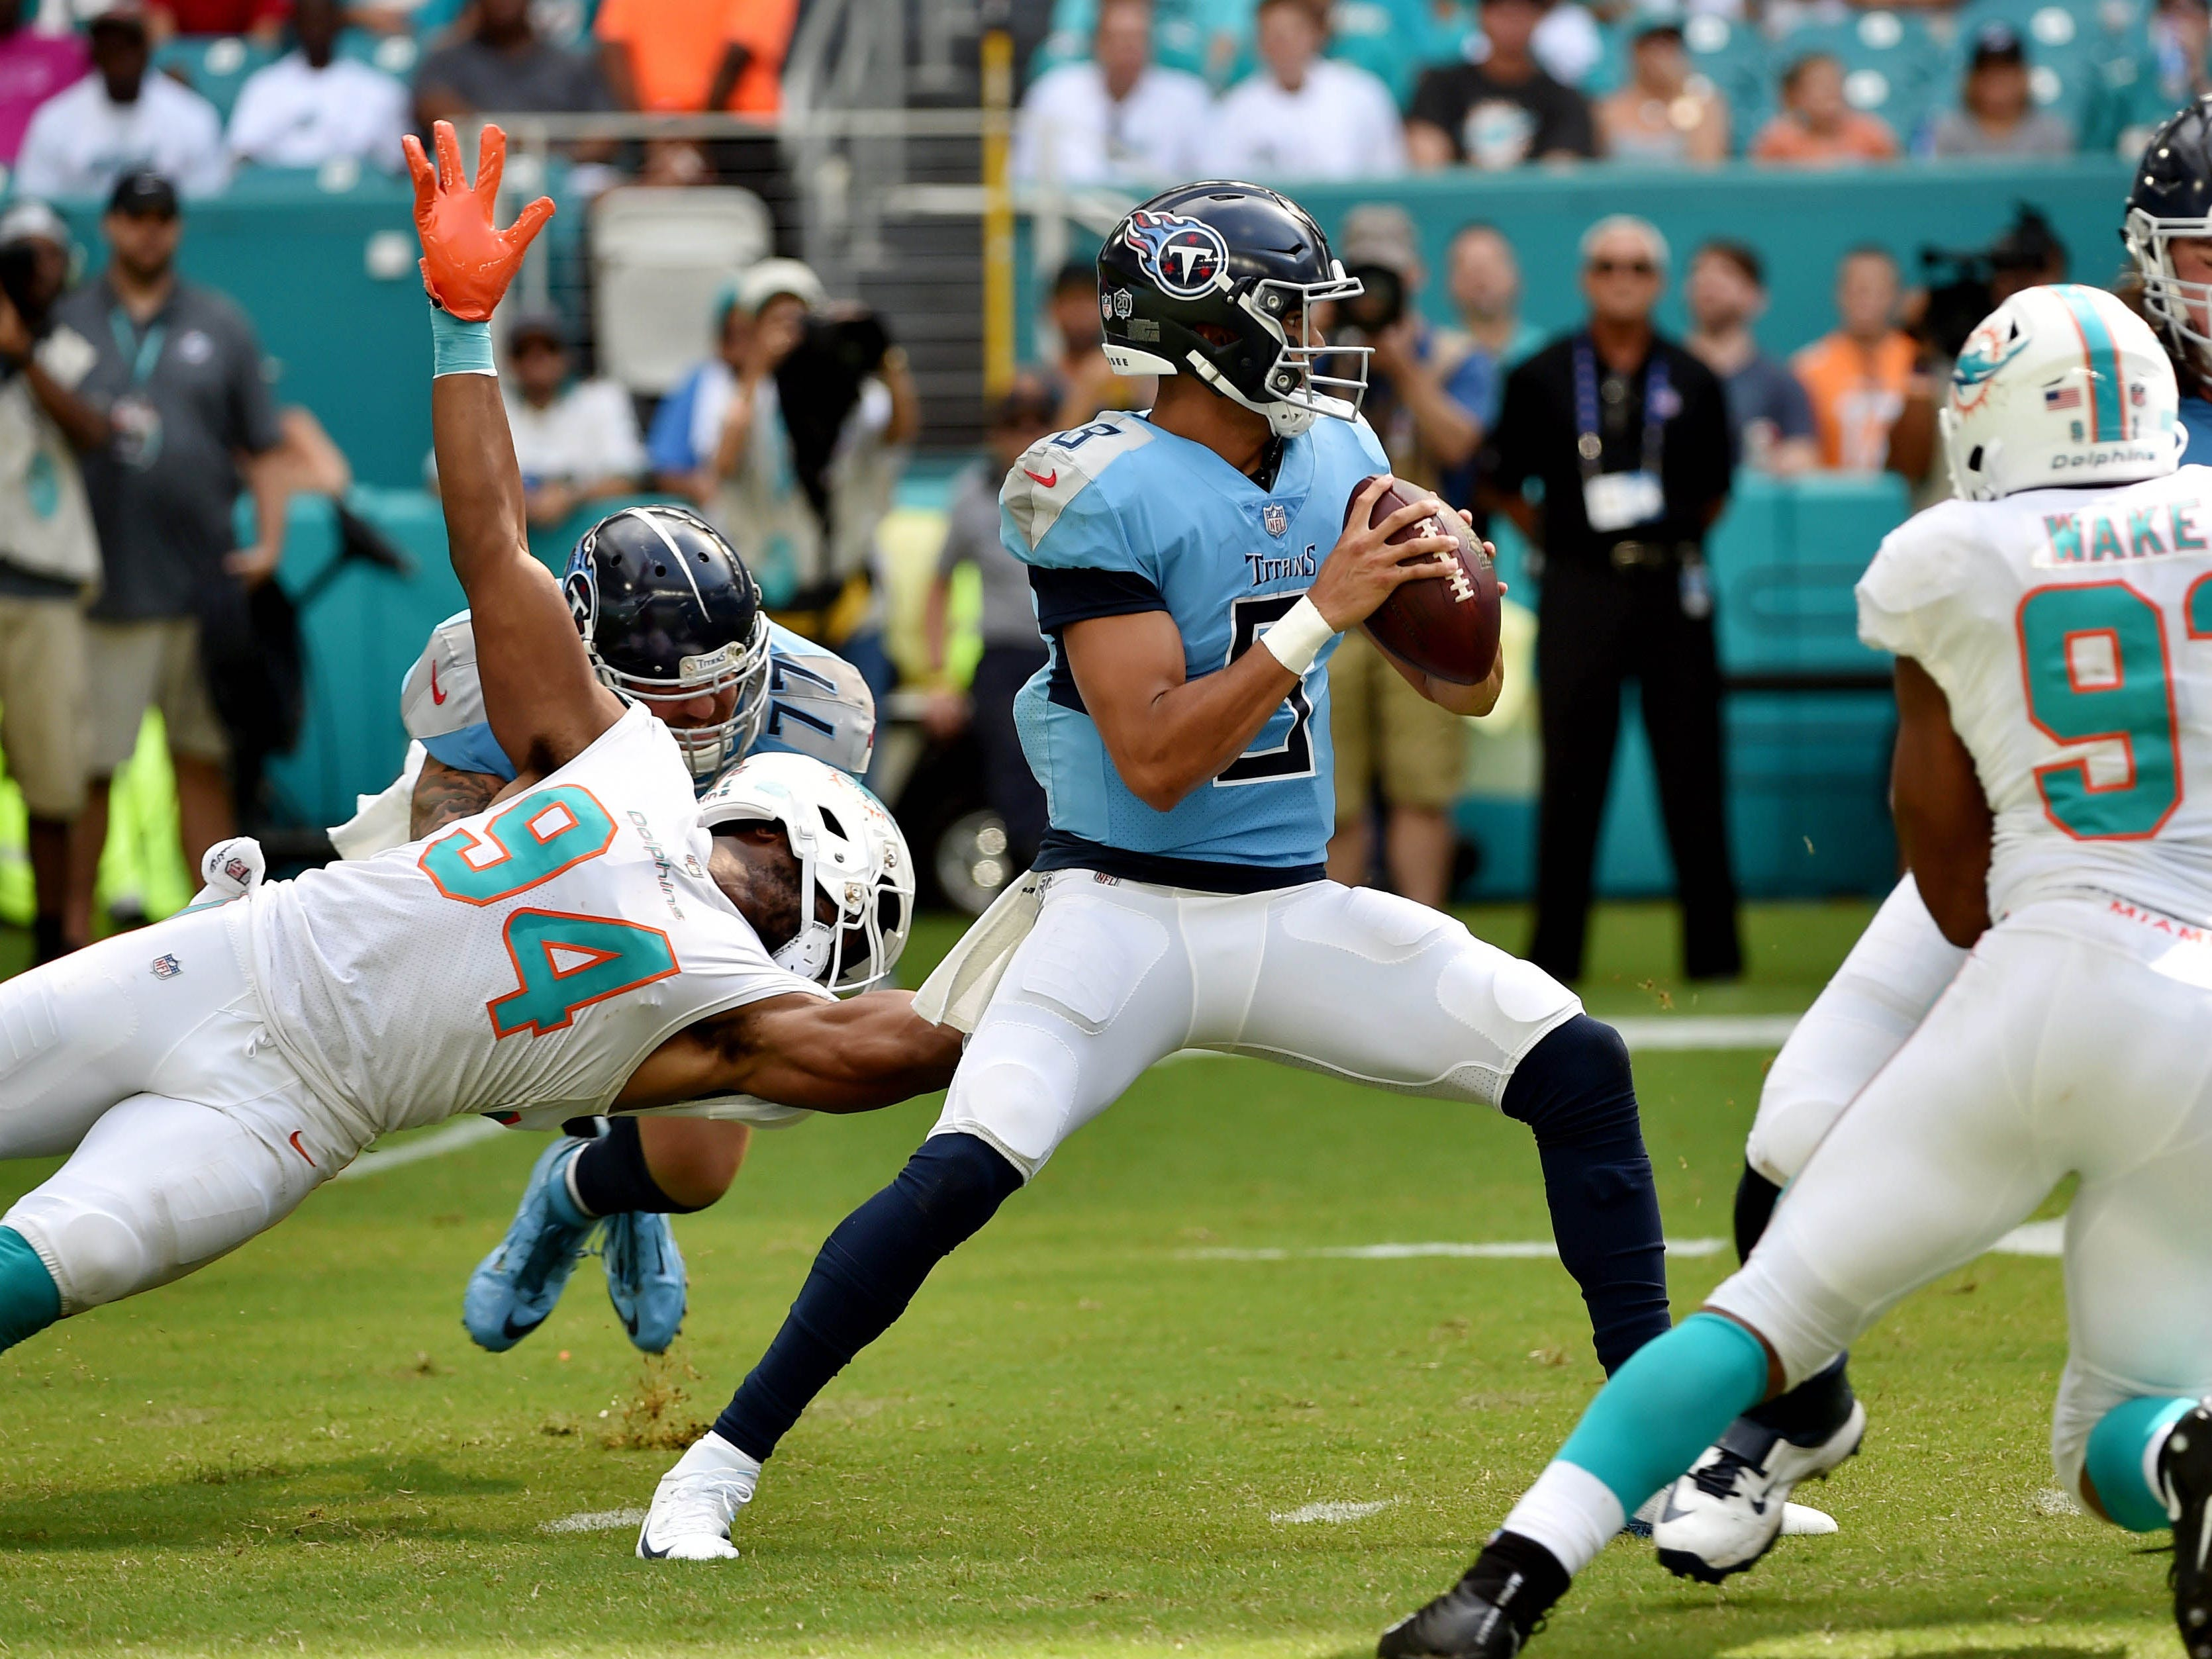 Sep 9, 2018; Miami Gardens, FL, USA; Tennessee Titans quarterback Marcus Mariota (8) throws a pass as Miami Dolphins defensive end Robert Quinn (94) has his facemask pulled on by Tennessee Titans offensive tackle Taylor Lewan (77) during the first half at Hard Rock Stadium. Mandatory Credit: Steve Mitchell-USA TODAY Sports